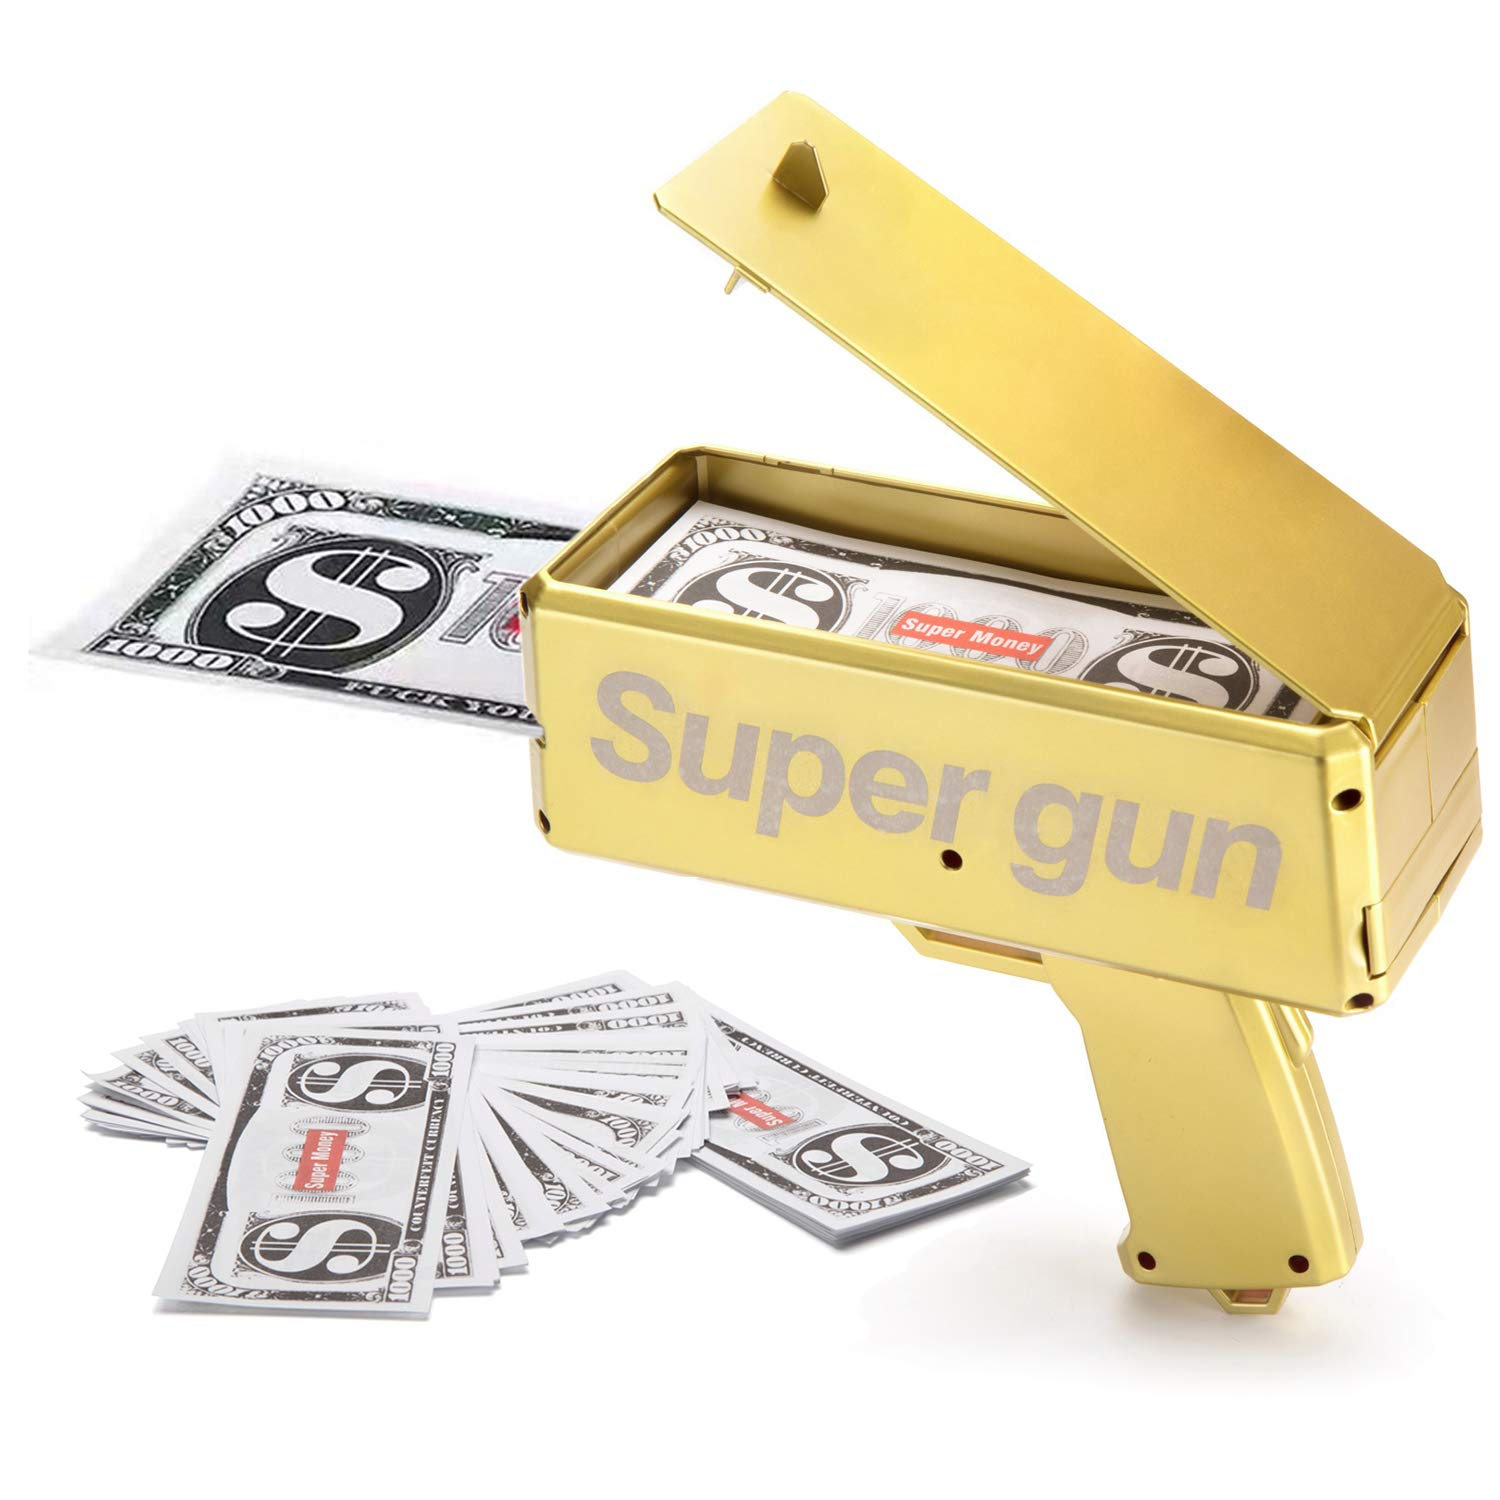 Alagoo Super Money Guns Paper Playing Spary Money Gun Make it Rain Toy Gun, Handheld Cash Gun Fake Bill Dispenser Money Shooter with 100 Pcs Play Money(Metallic Gold)